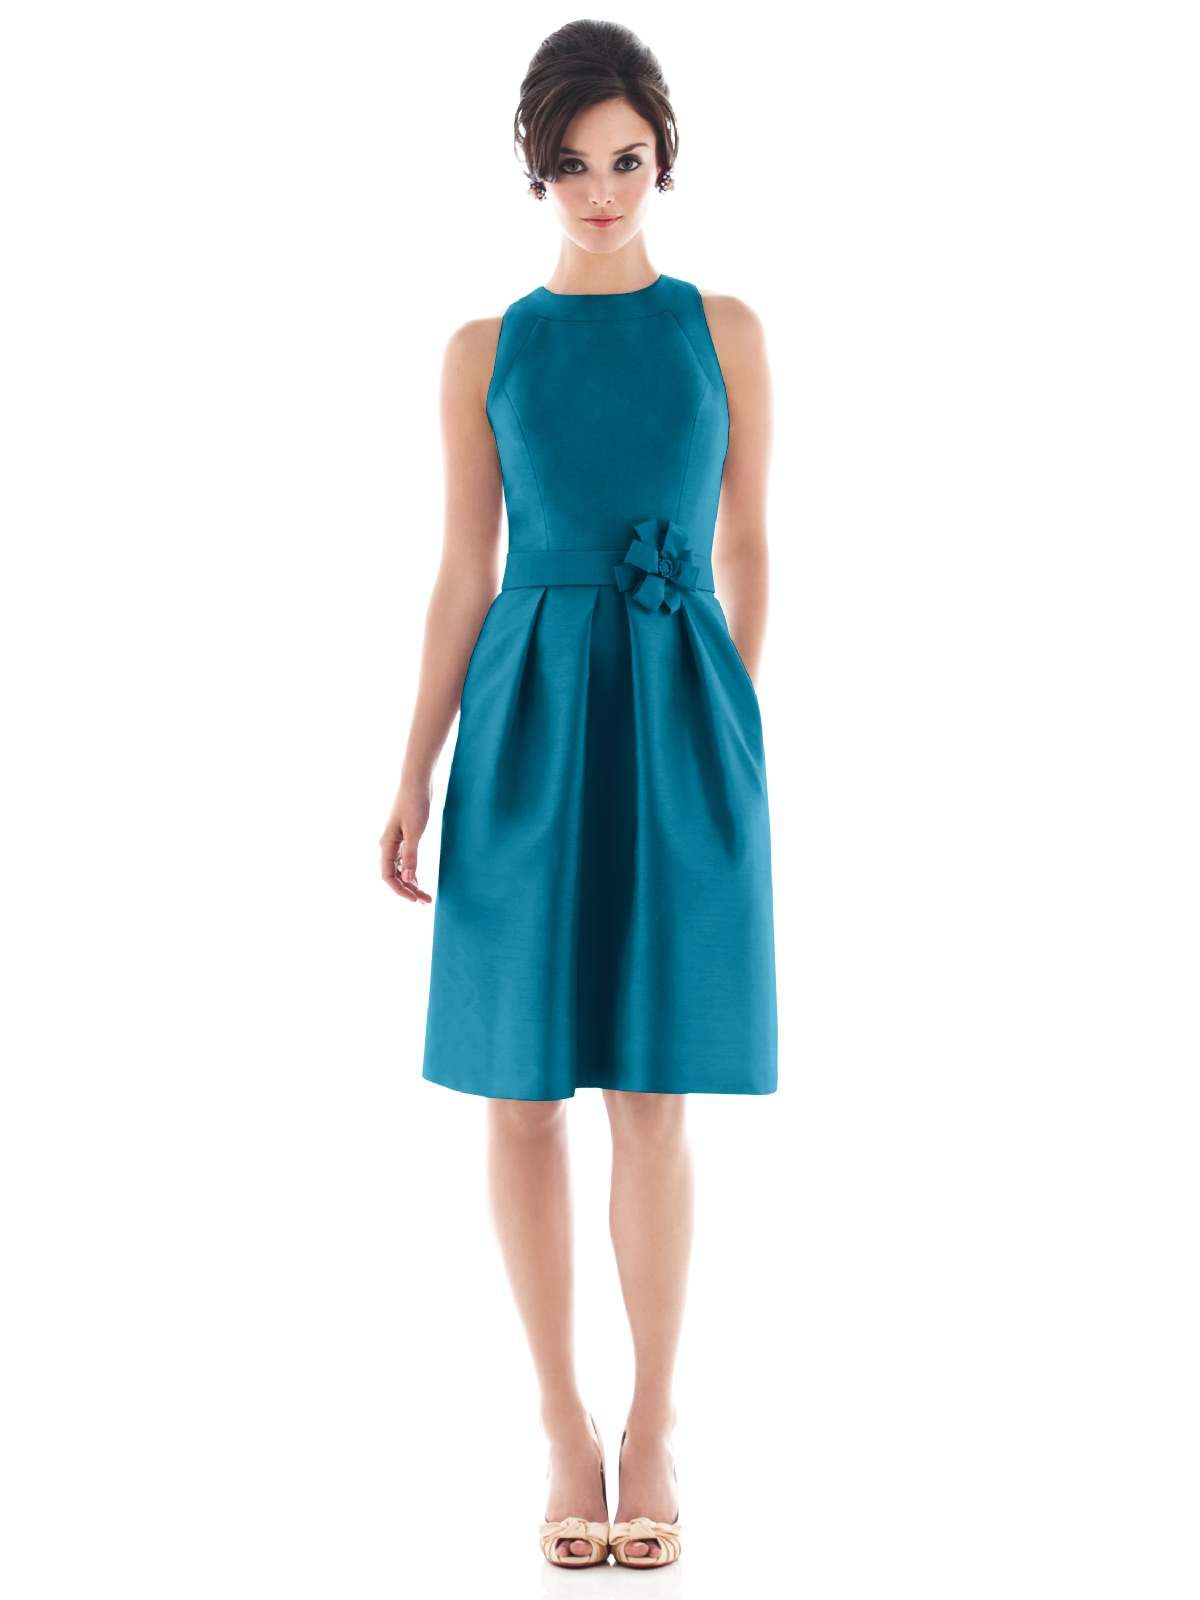 17 Best images about Teal dress on Pinterest